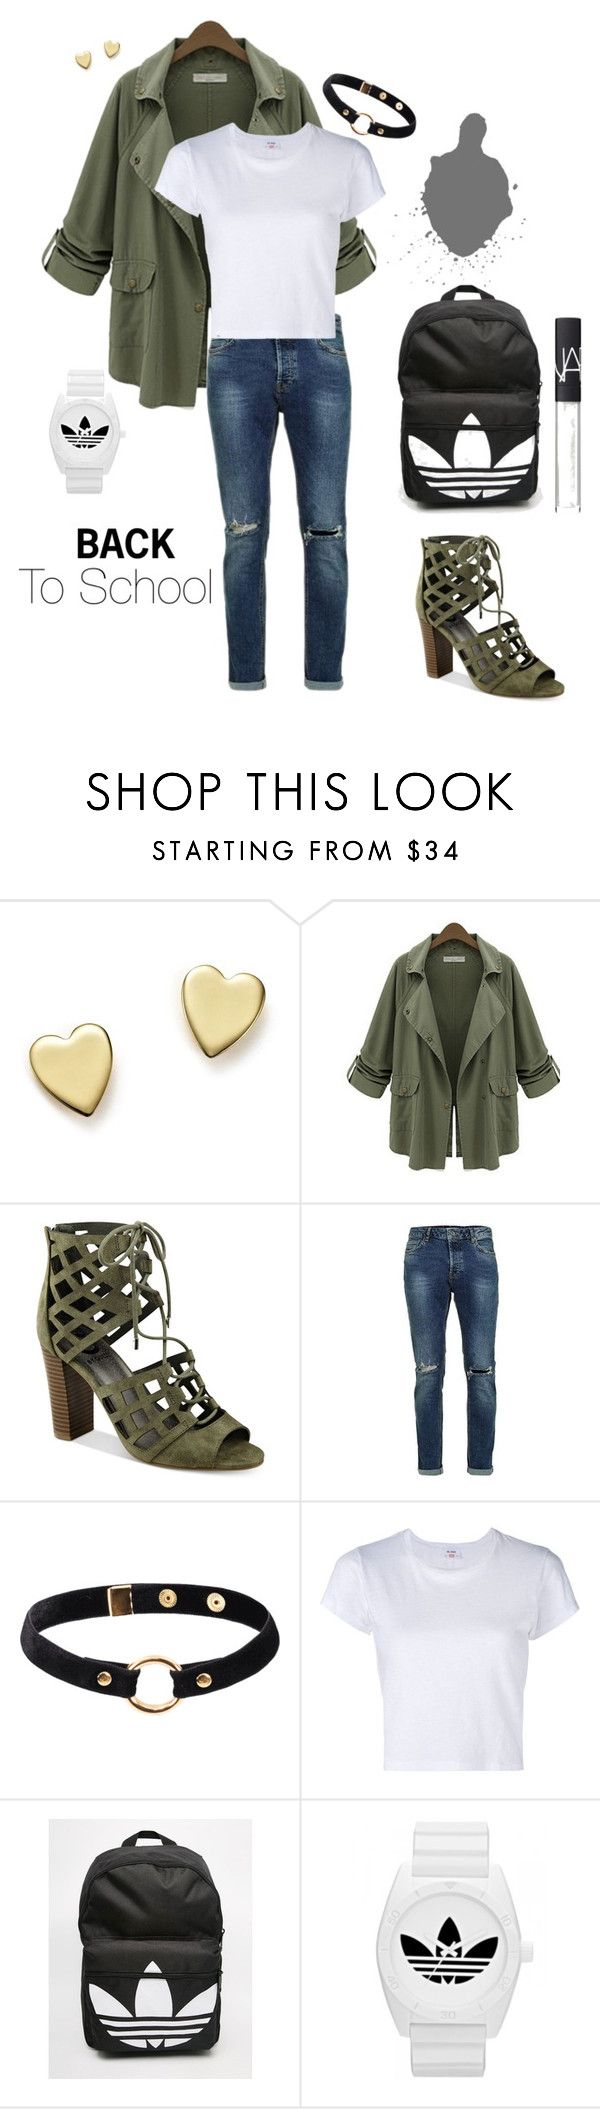 """Back to School"" by poshcandies ❤ liked on Polyvore featuring Bloomingdale's, Chicnova Fashion, G by Guess, Nika, RE/DONE, adidas, NARS Cosmetics, BackToSchool, Heels and olive"